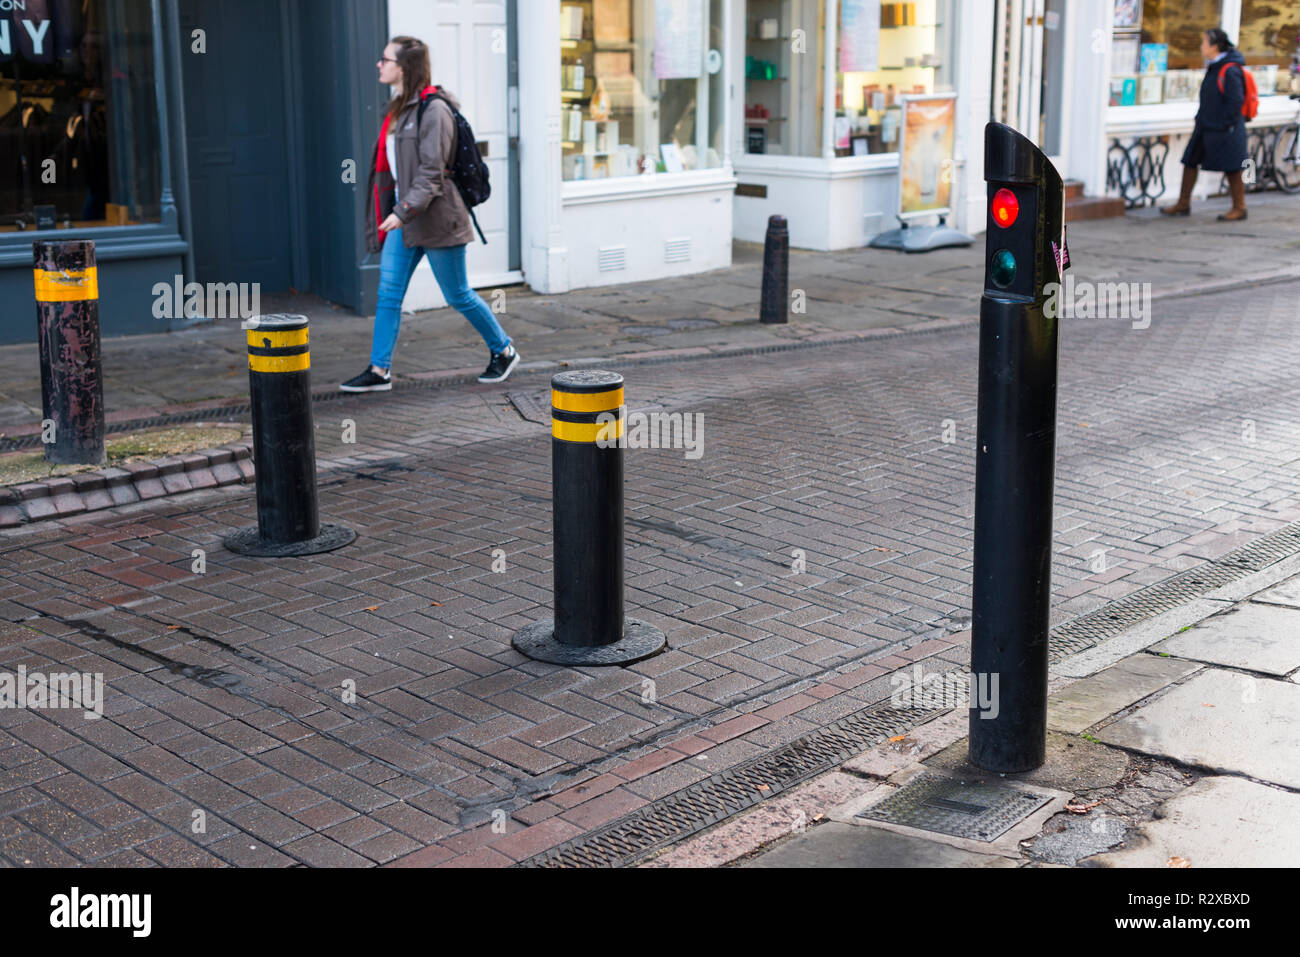 Automatic rising bollards to restrict traffic in Cambridge city centre, Cambridgeshire, England, UK - Stock Image